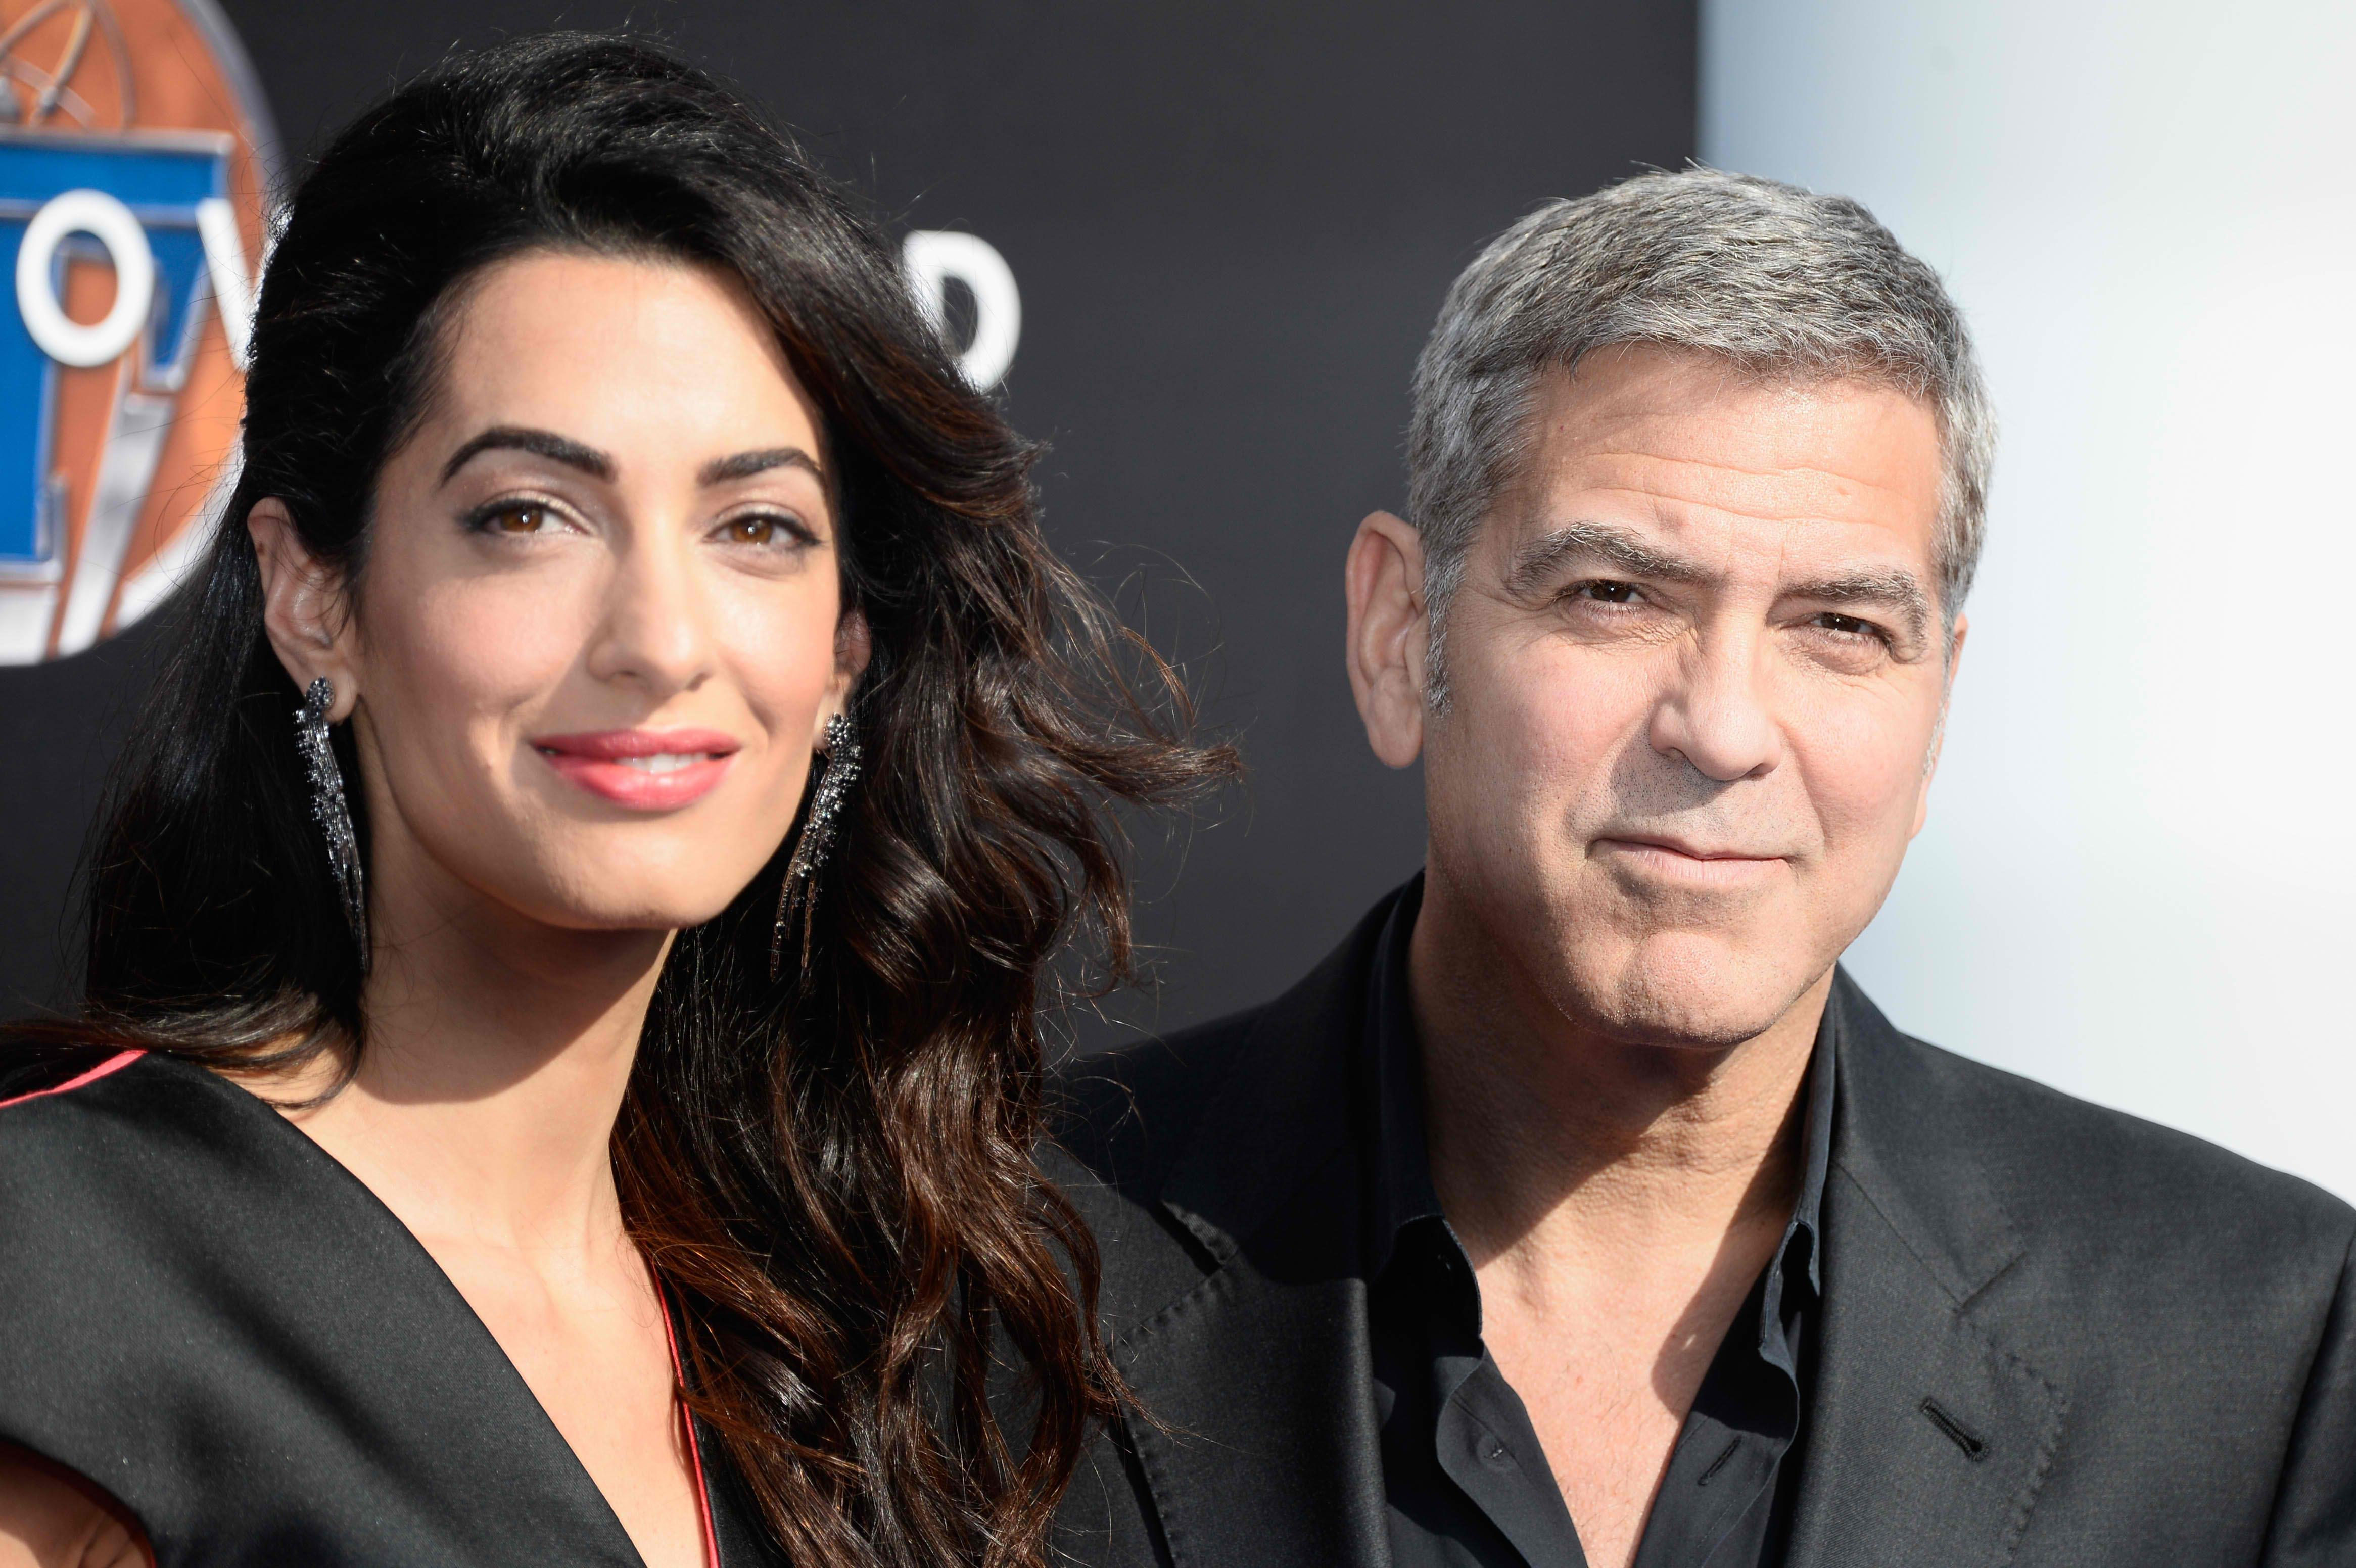 Amal Clooney Reveals Her and George's Future Pregnancy Plans